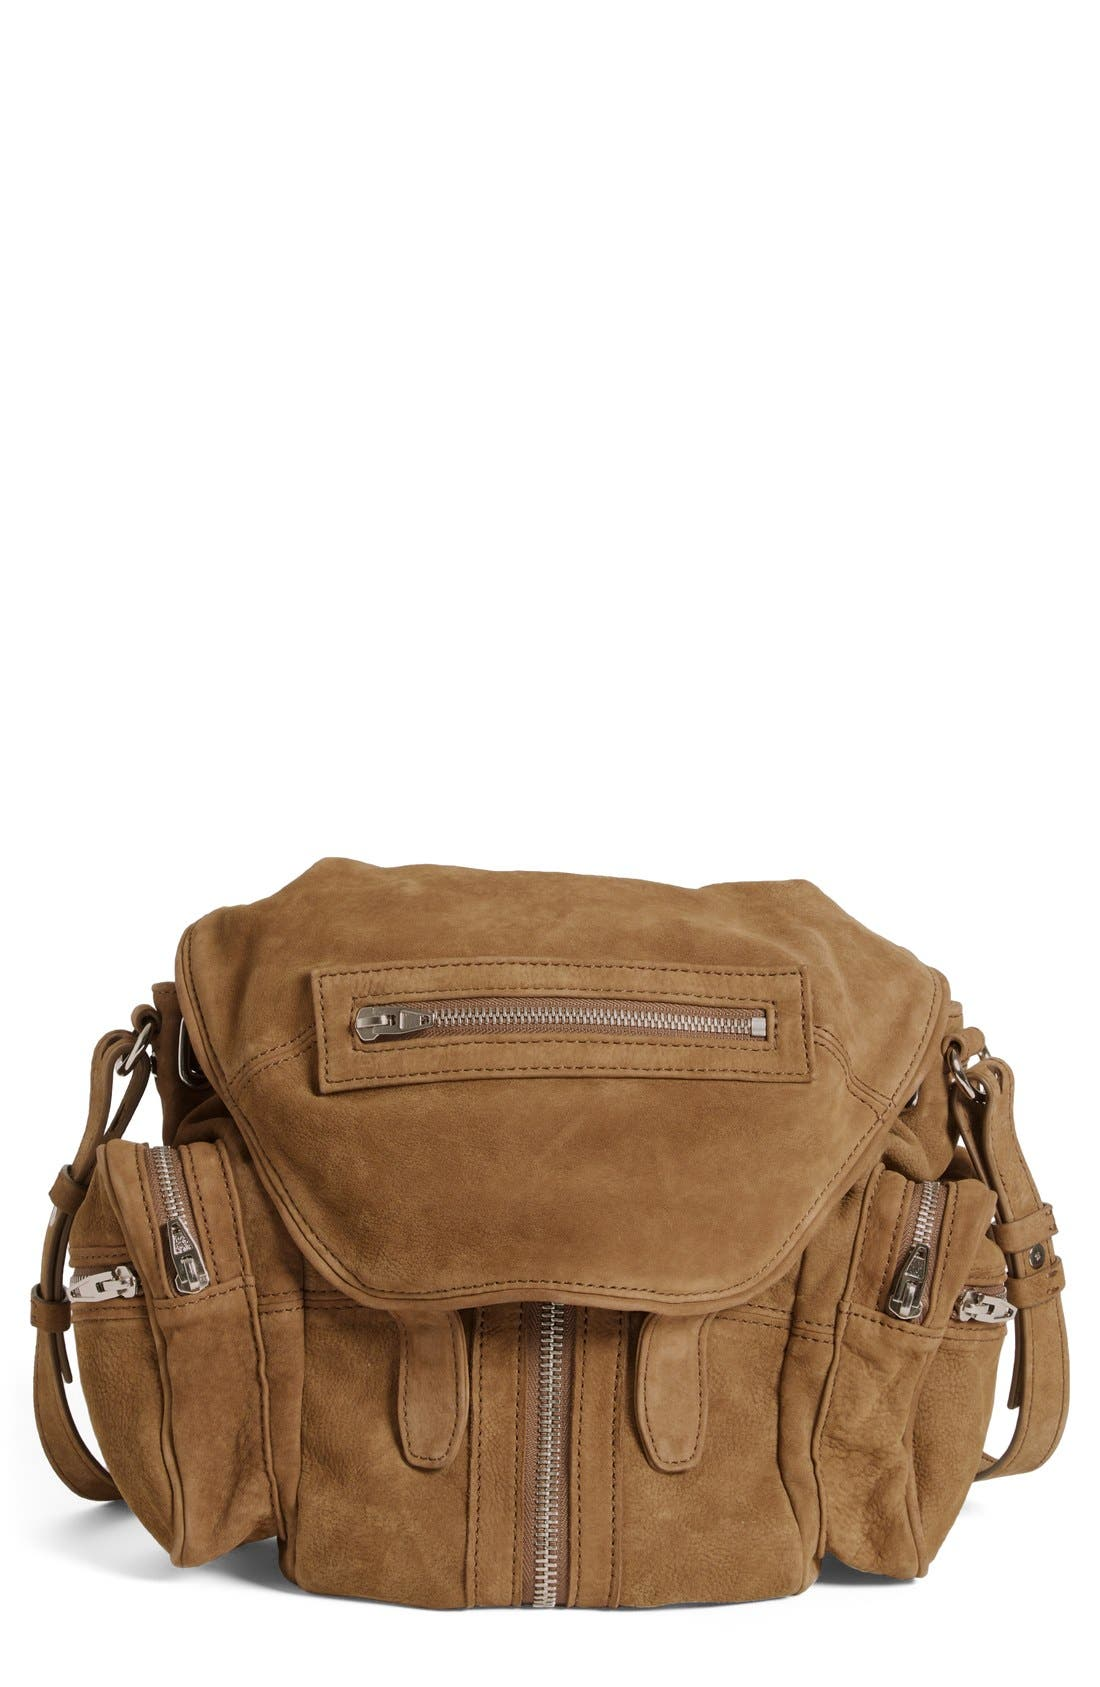 Alternate Image 1 Selected - Alexander Wang 'Mini Marti' Nubuck Leather Backpack